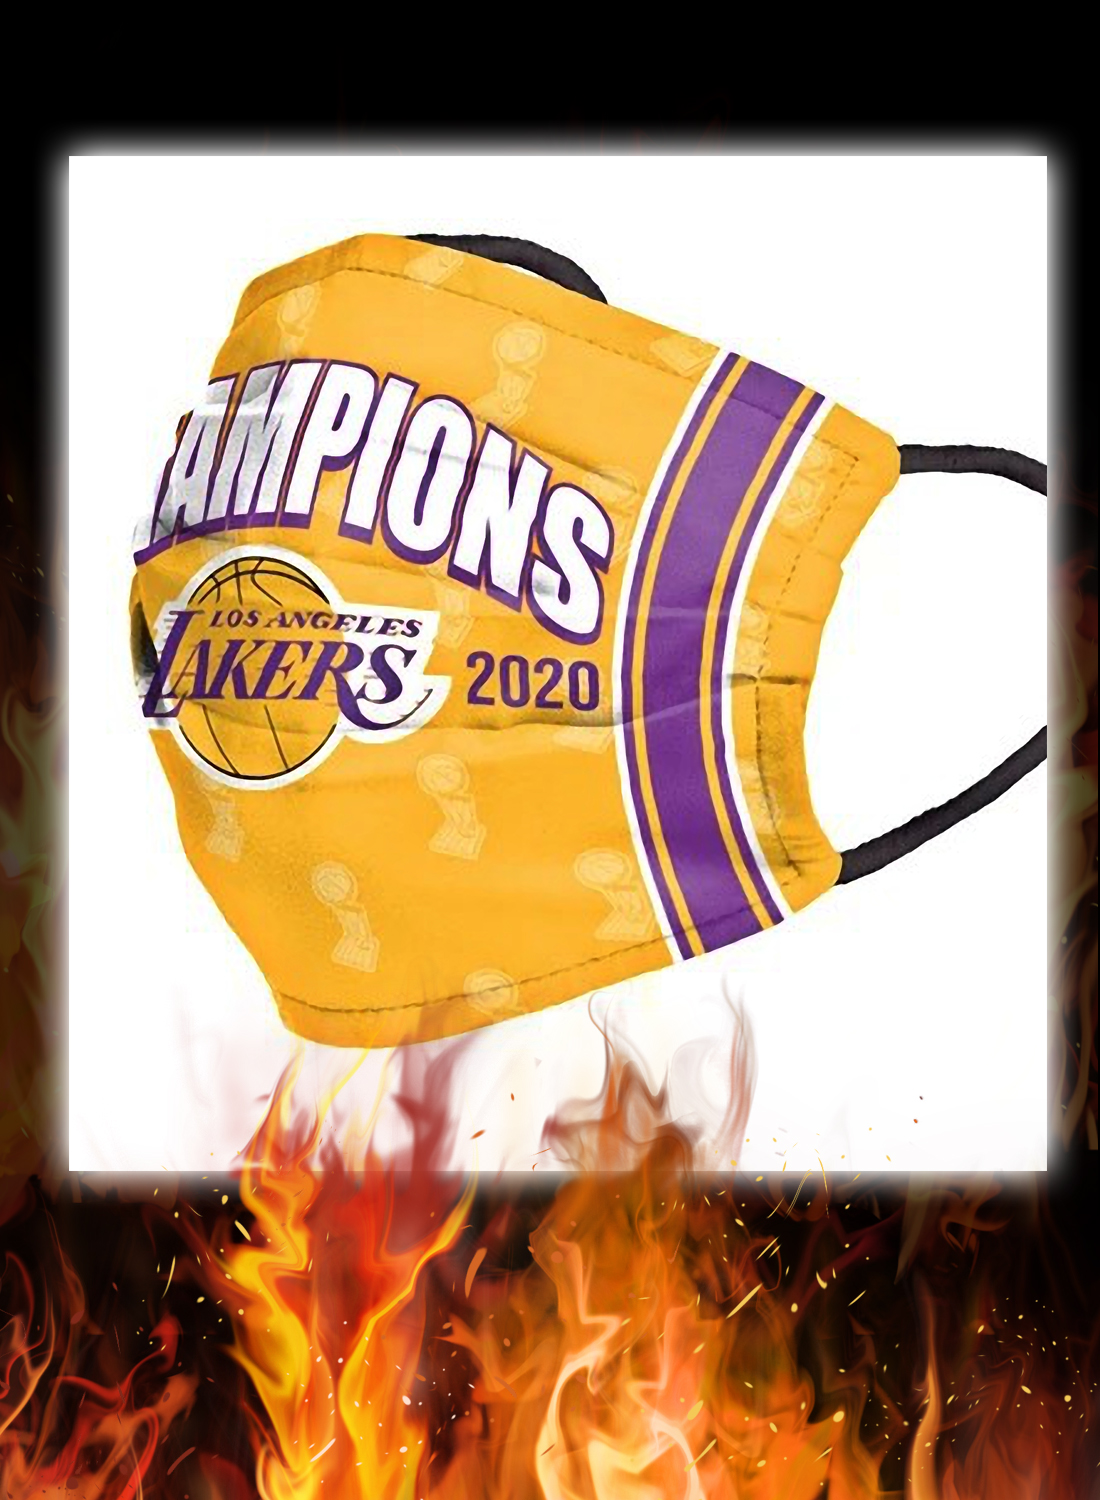 2020 NBA champions los angeles lakers face mask 1